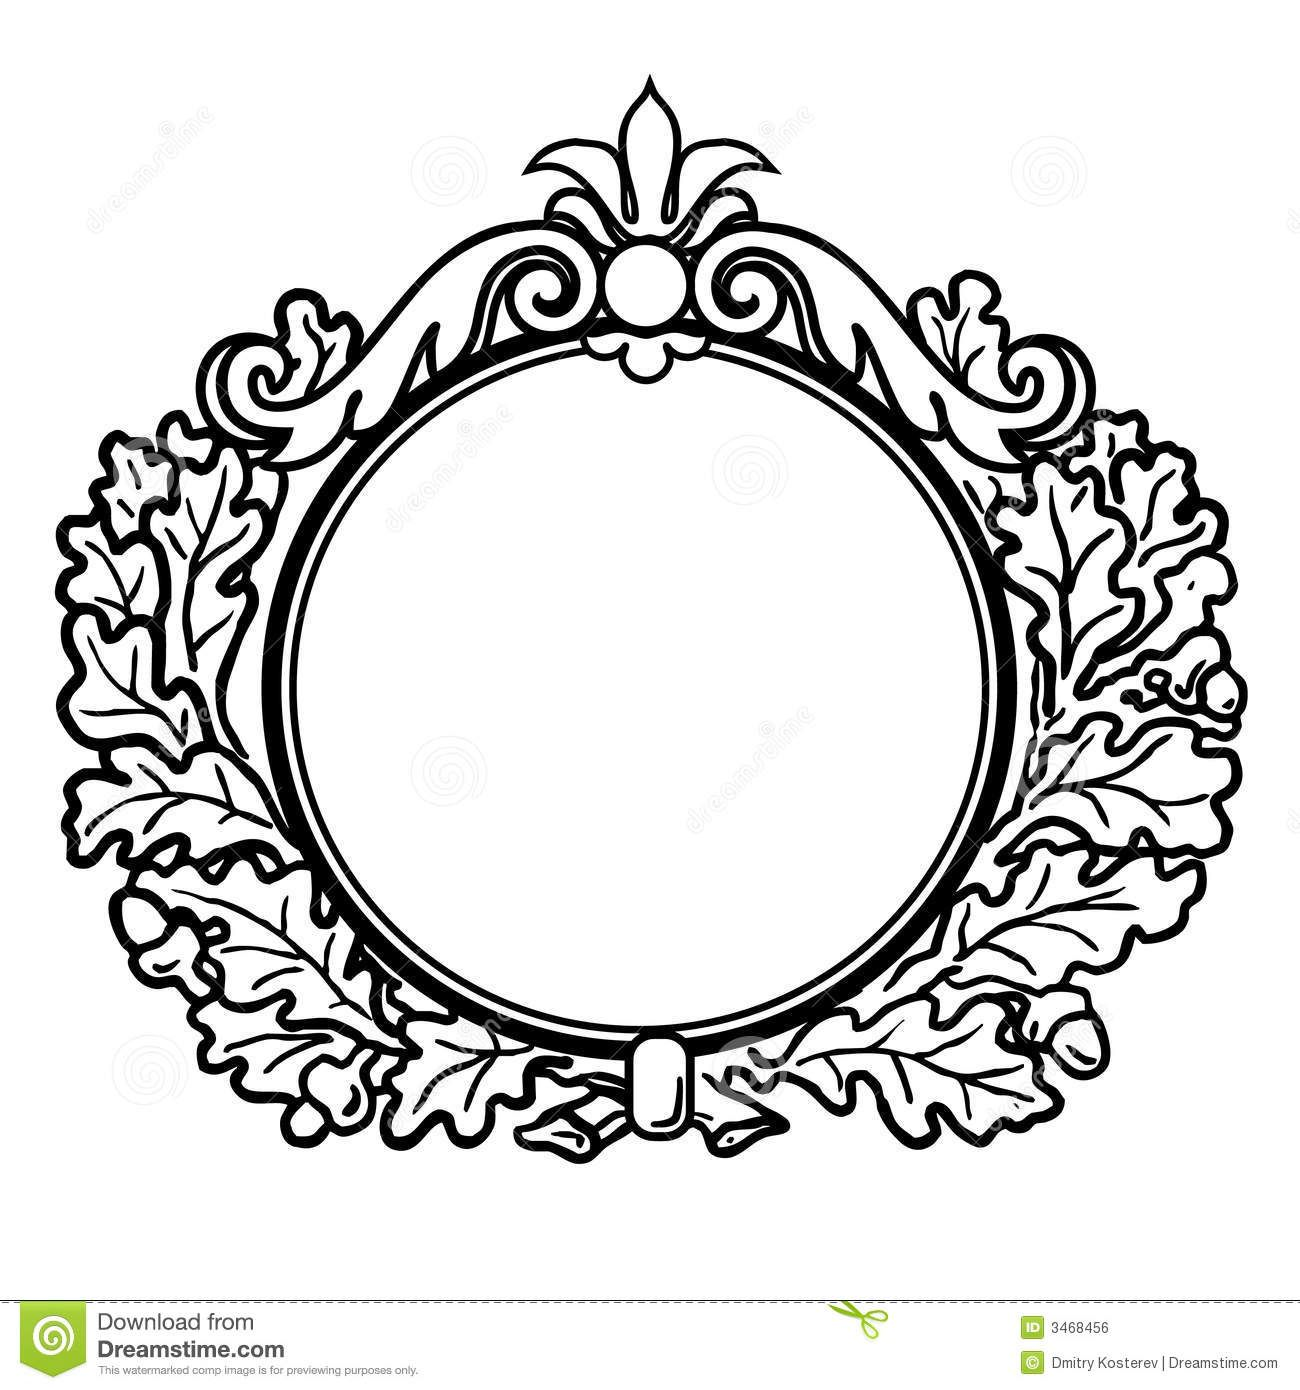 pin by d mdetallitos y manualidades on plantillas silhouette cameo rh pinterest com victorian clipart frames victorian clip art borders free